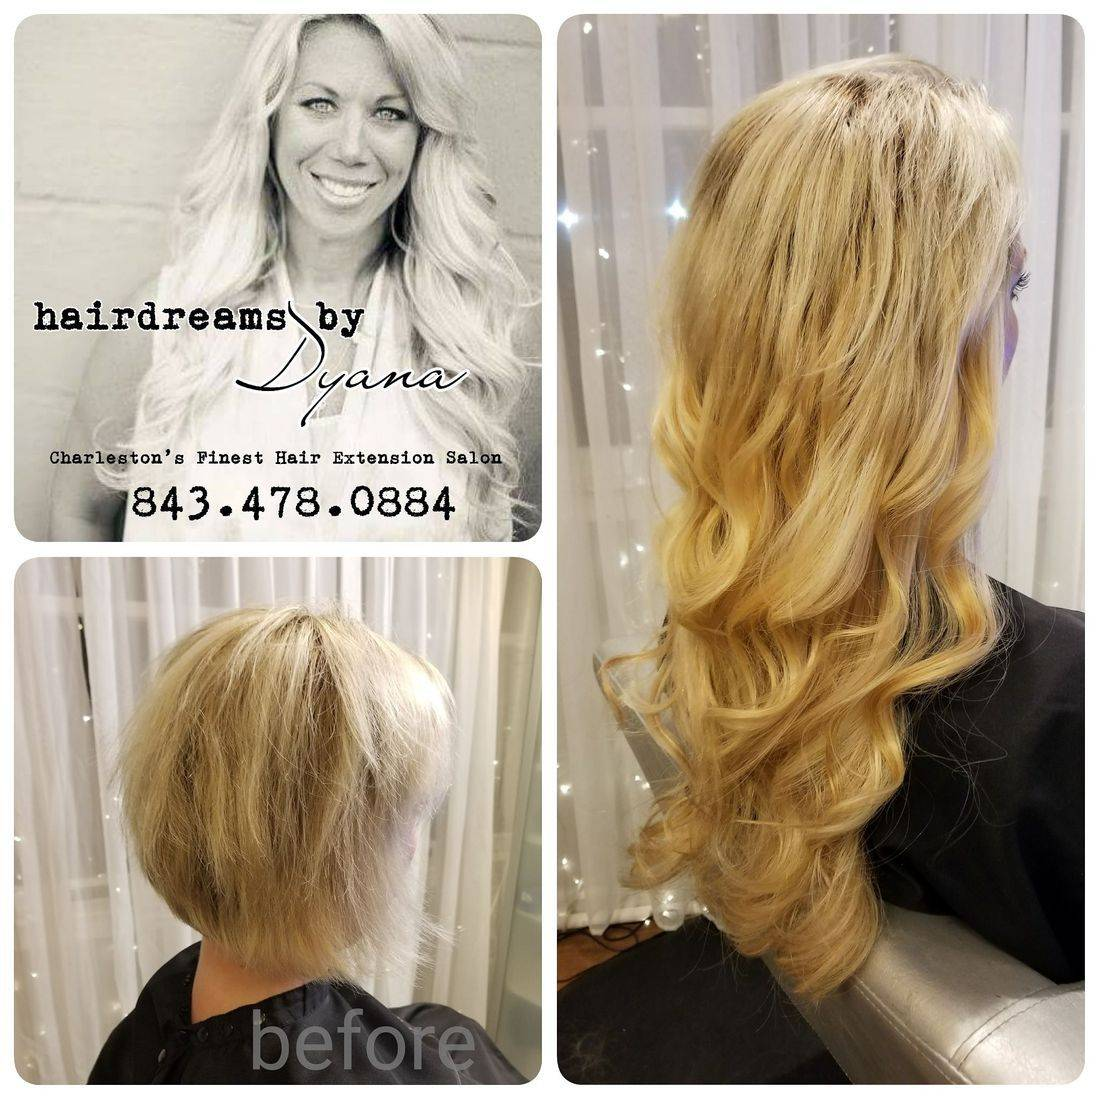 The Winchester Spa and Salon HairDreams by Dyana before and After Hair Extensions.  Summerville, SC